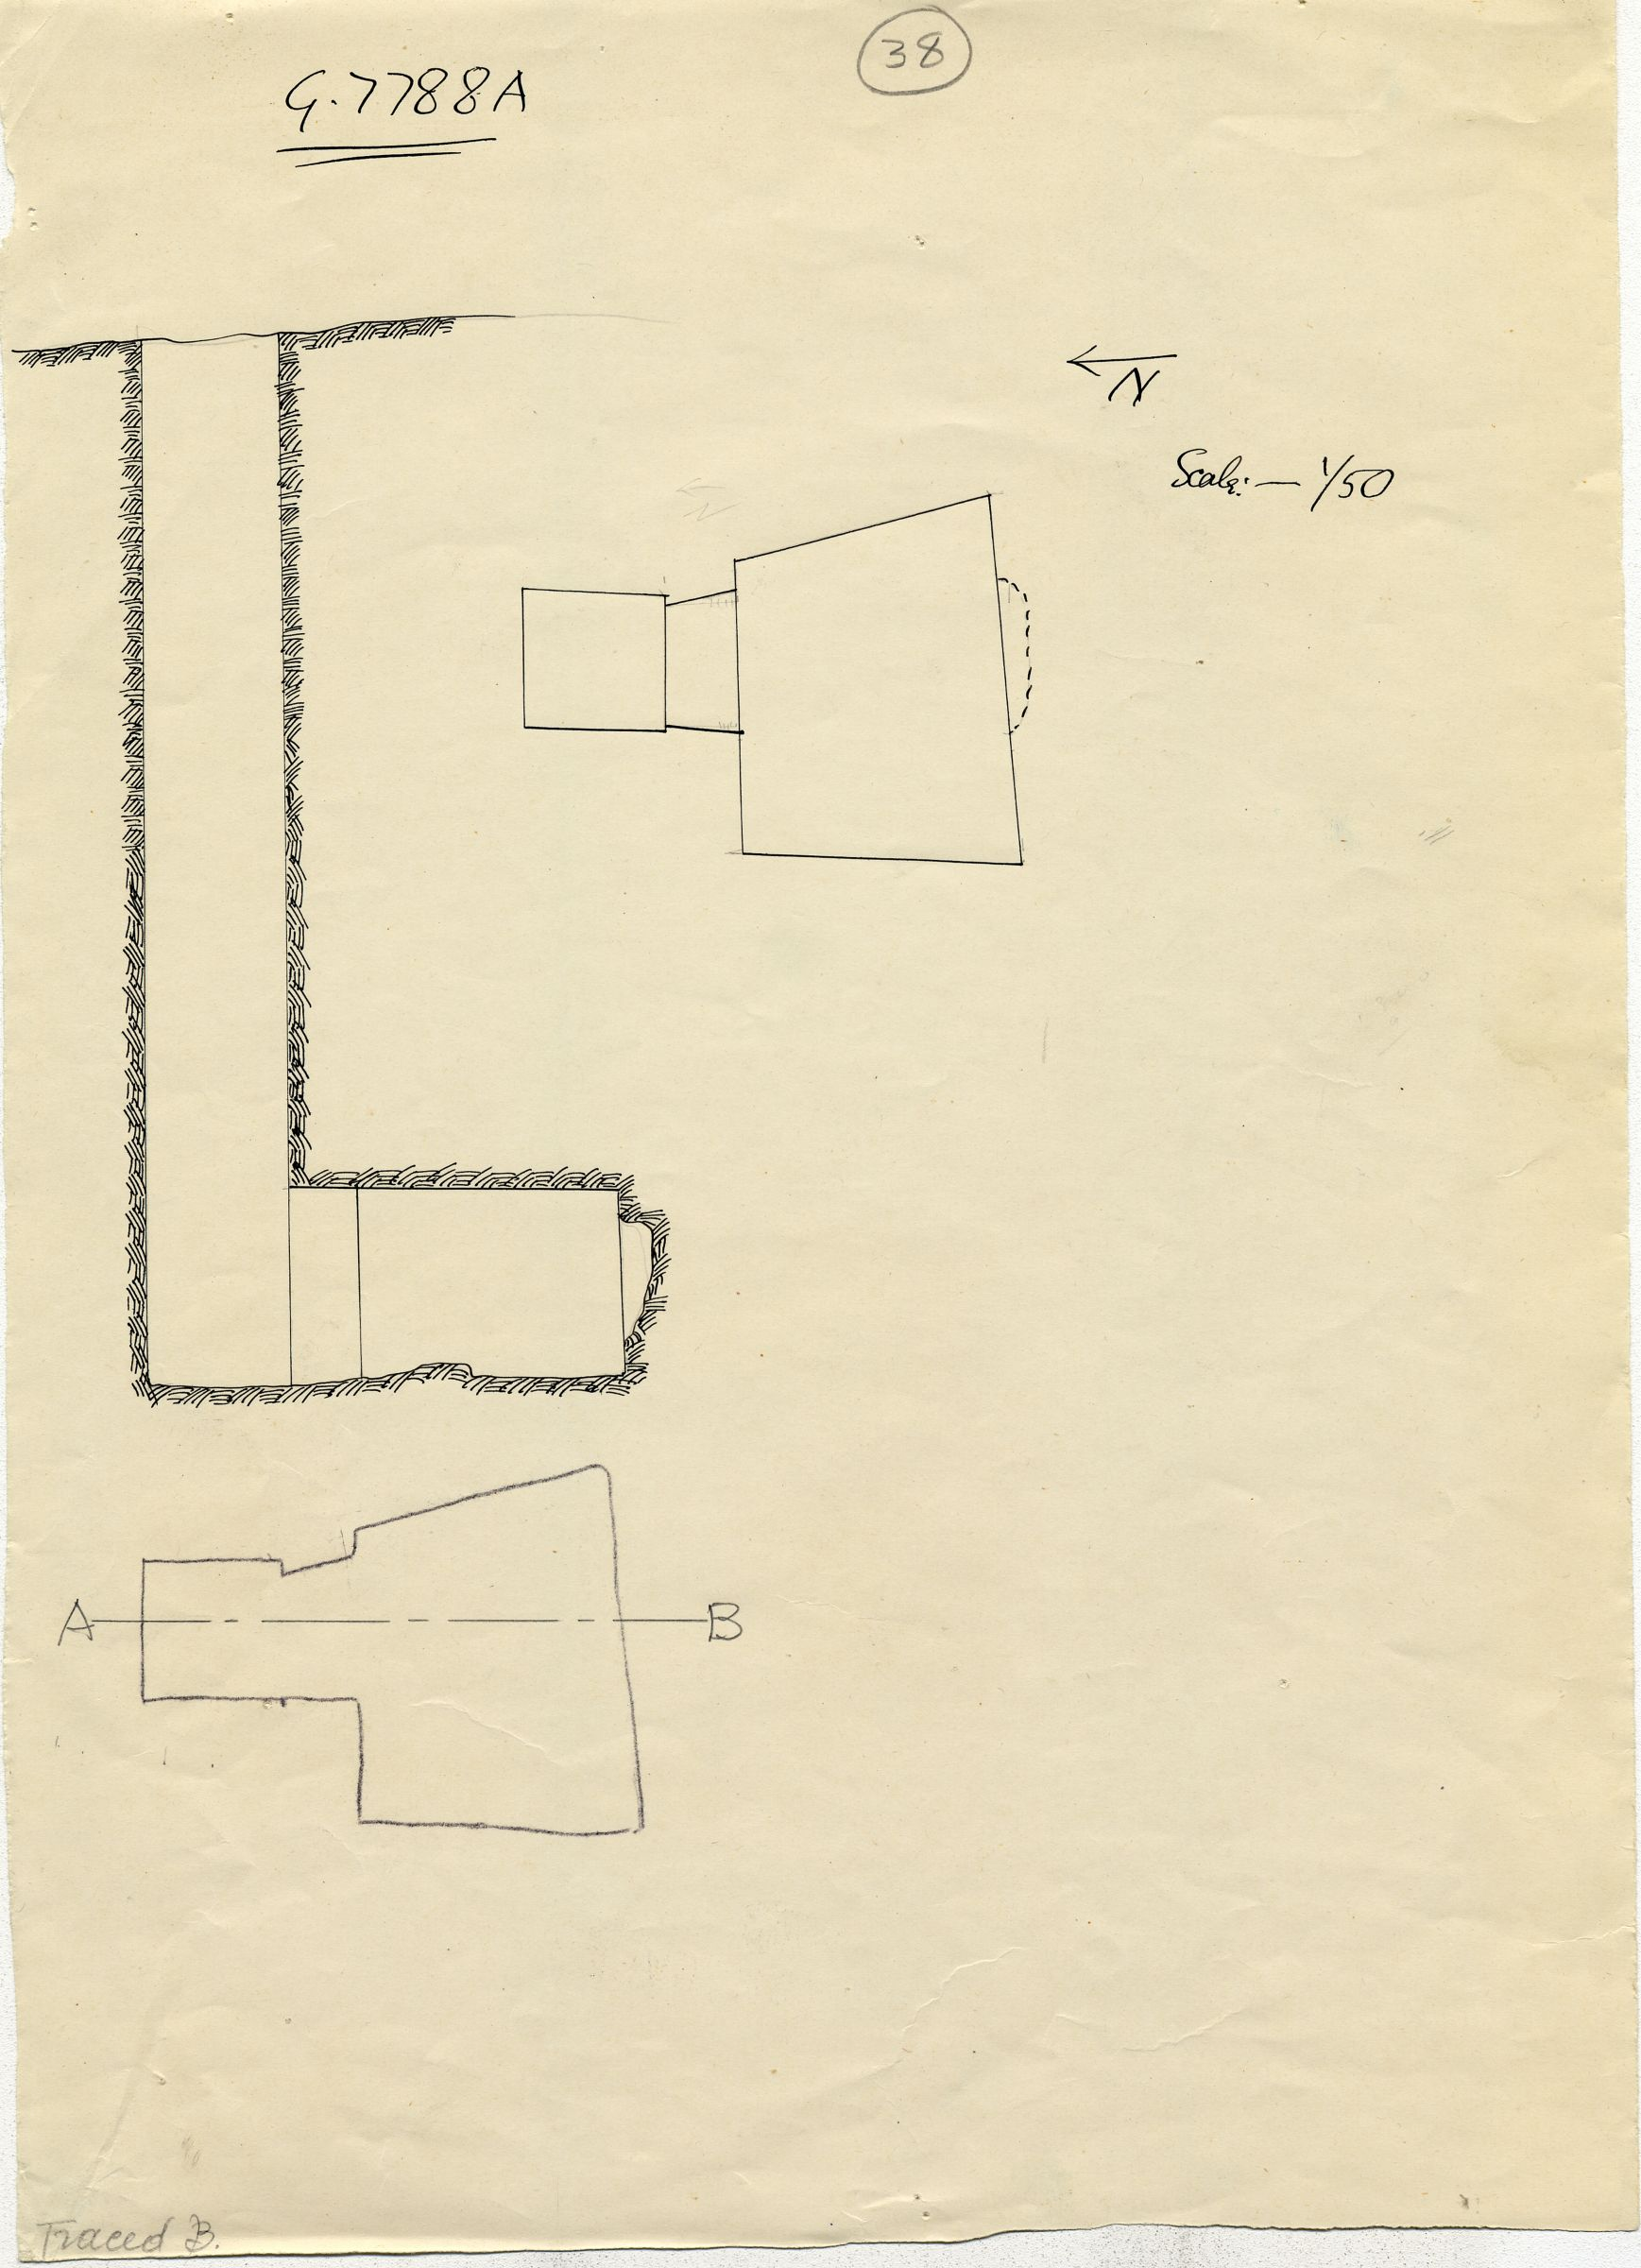 Maps and plans: G 7788, Shaft A